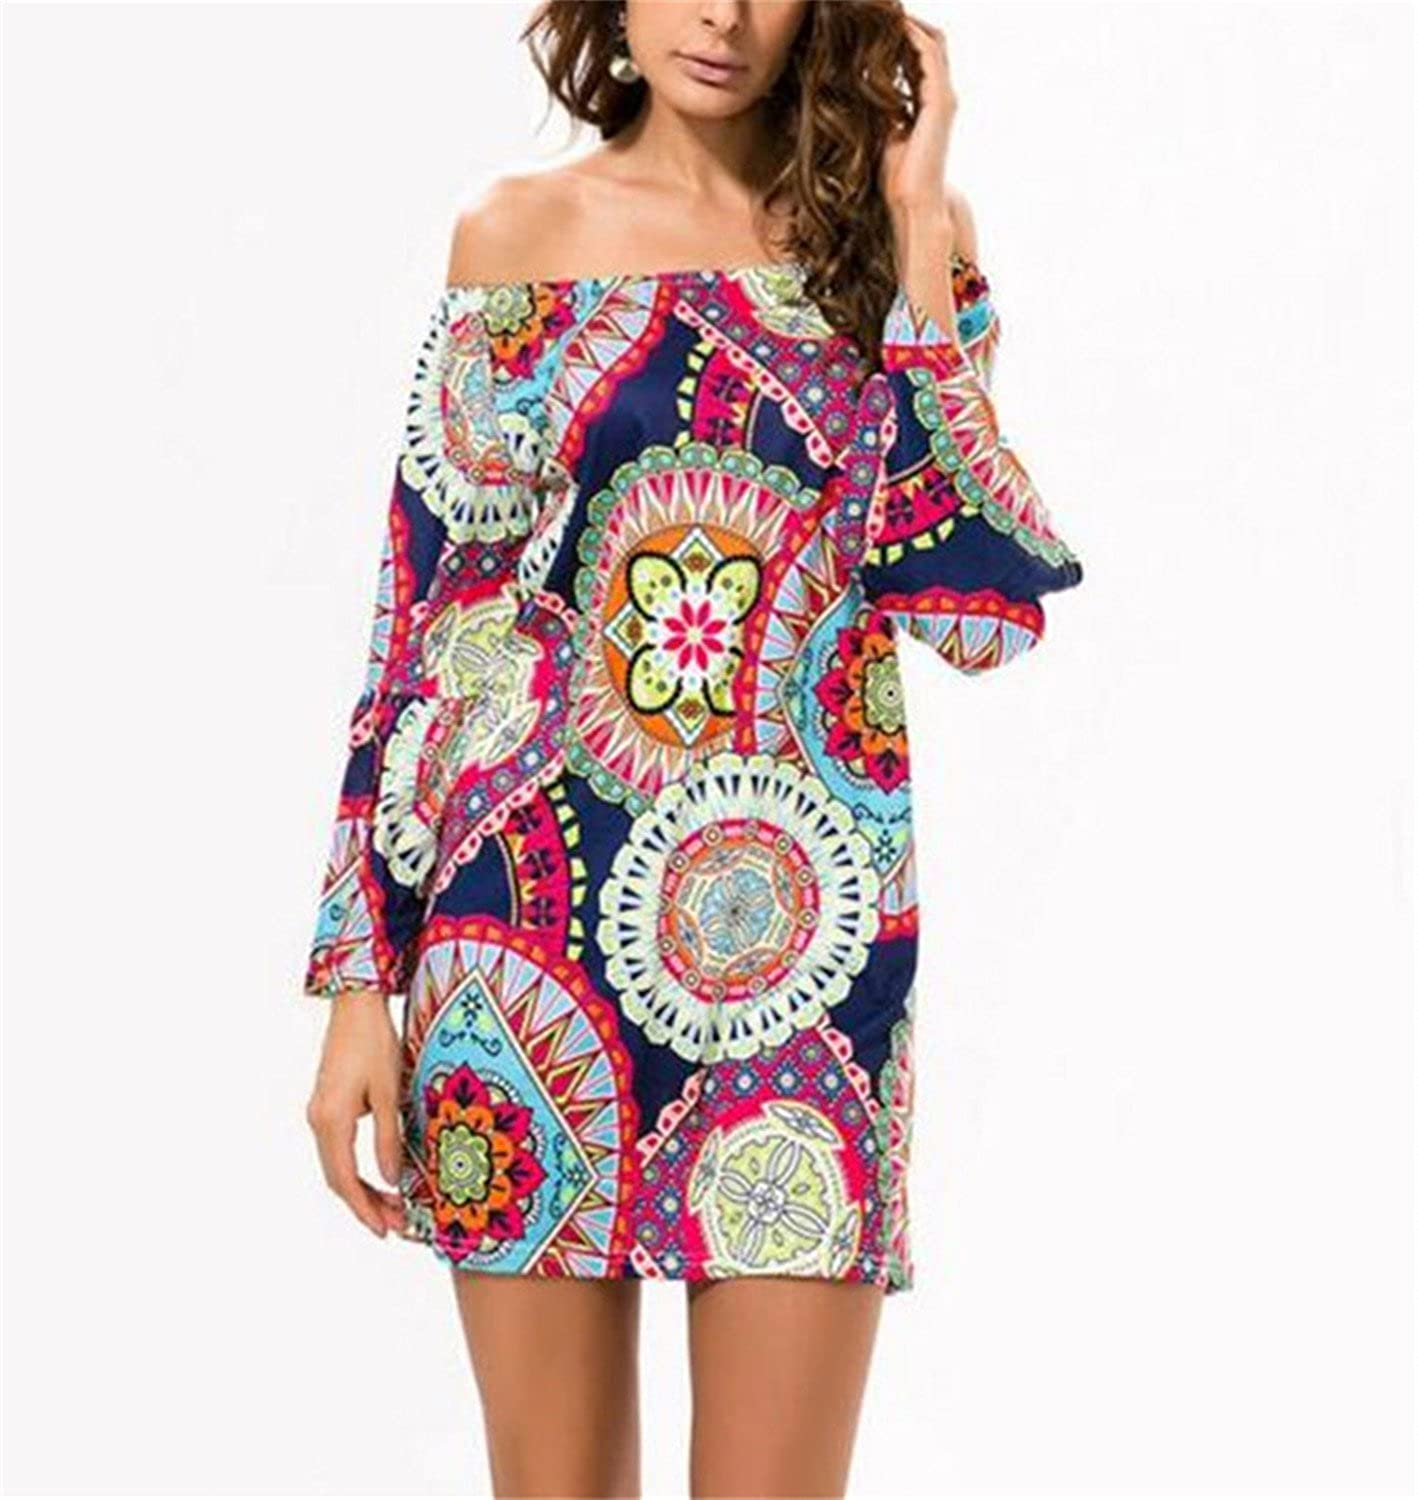 Robin Santiago Summer Dress Print Beach Vintage Sexy Female Vestidos De Festa Casual Women Robe Party Dresses at Amazon Womens Clothing store: